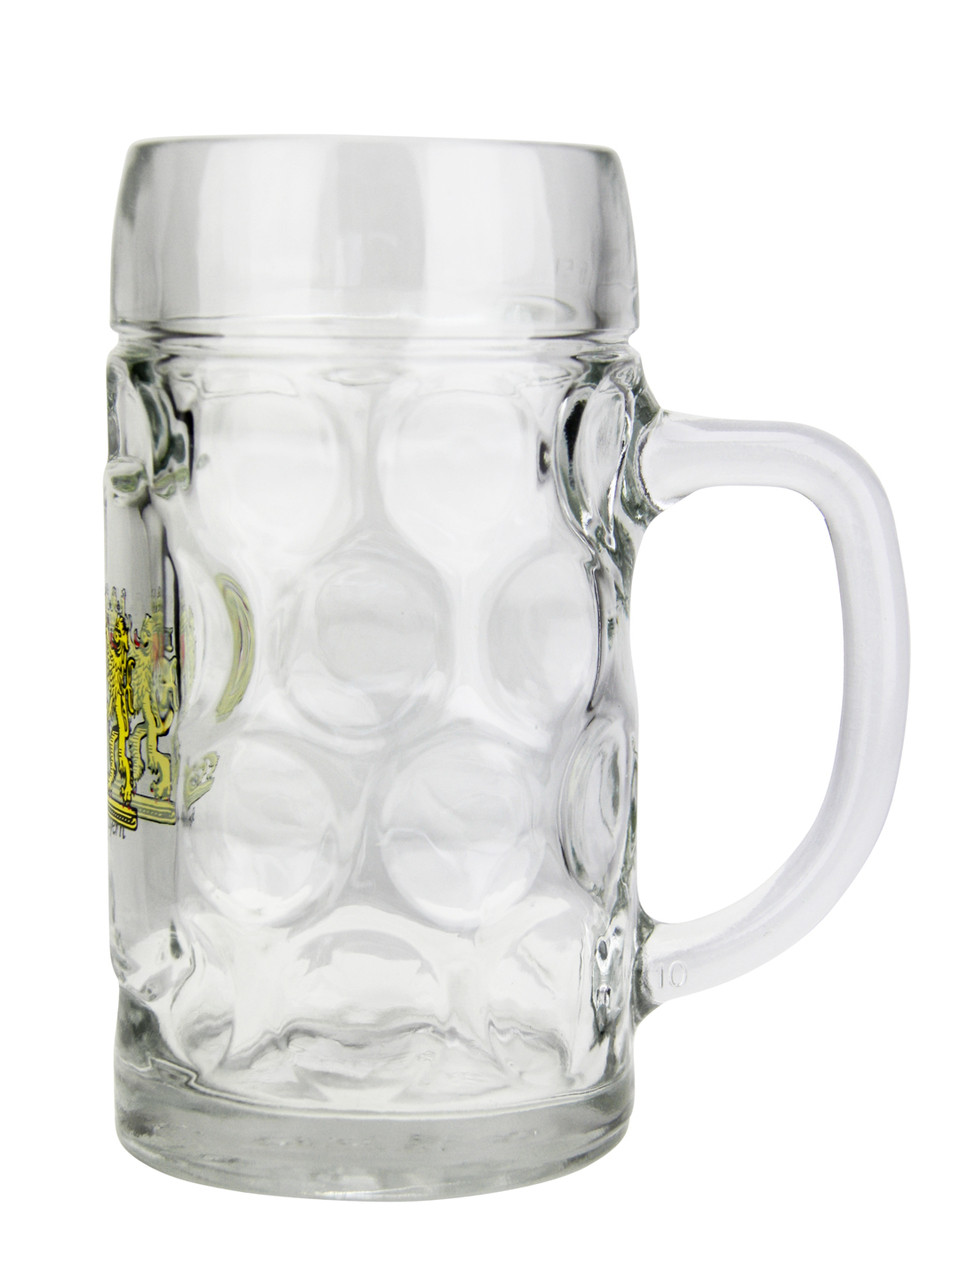 Traditional German Personalized Glass Beer Mug